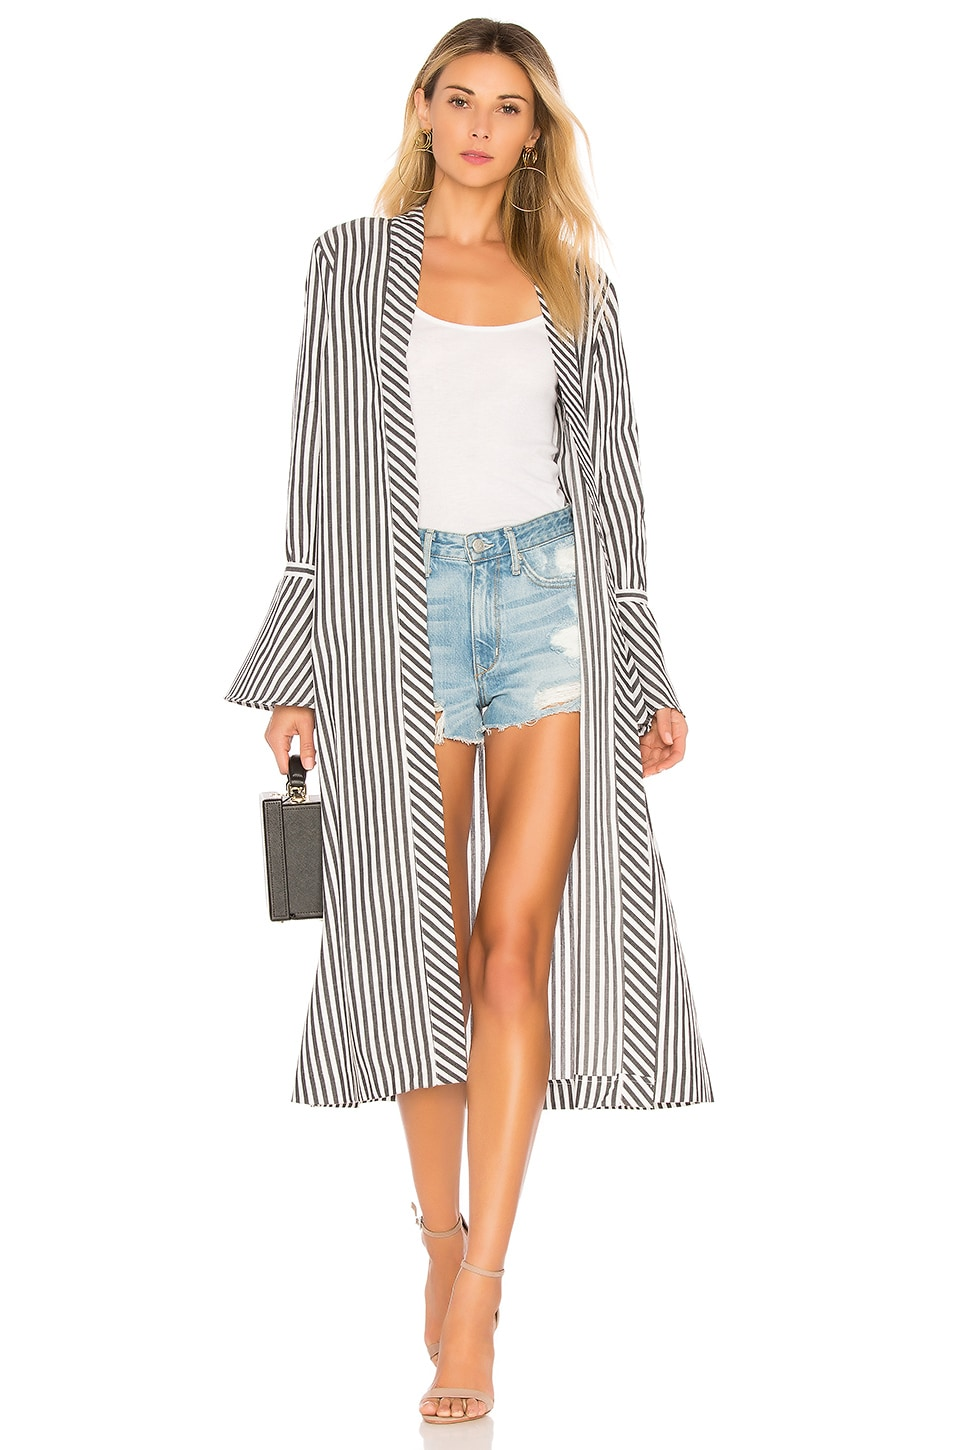 L'Academie Alex Duster in Grey White Stripe